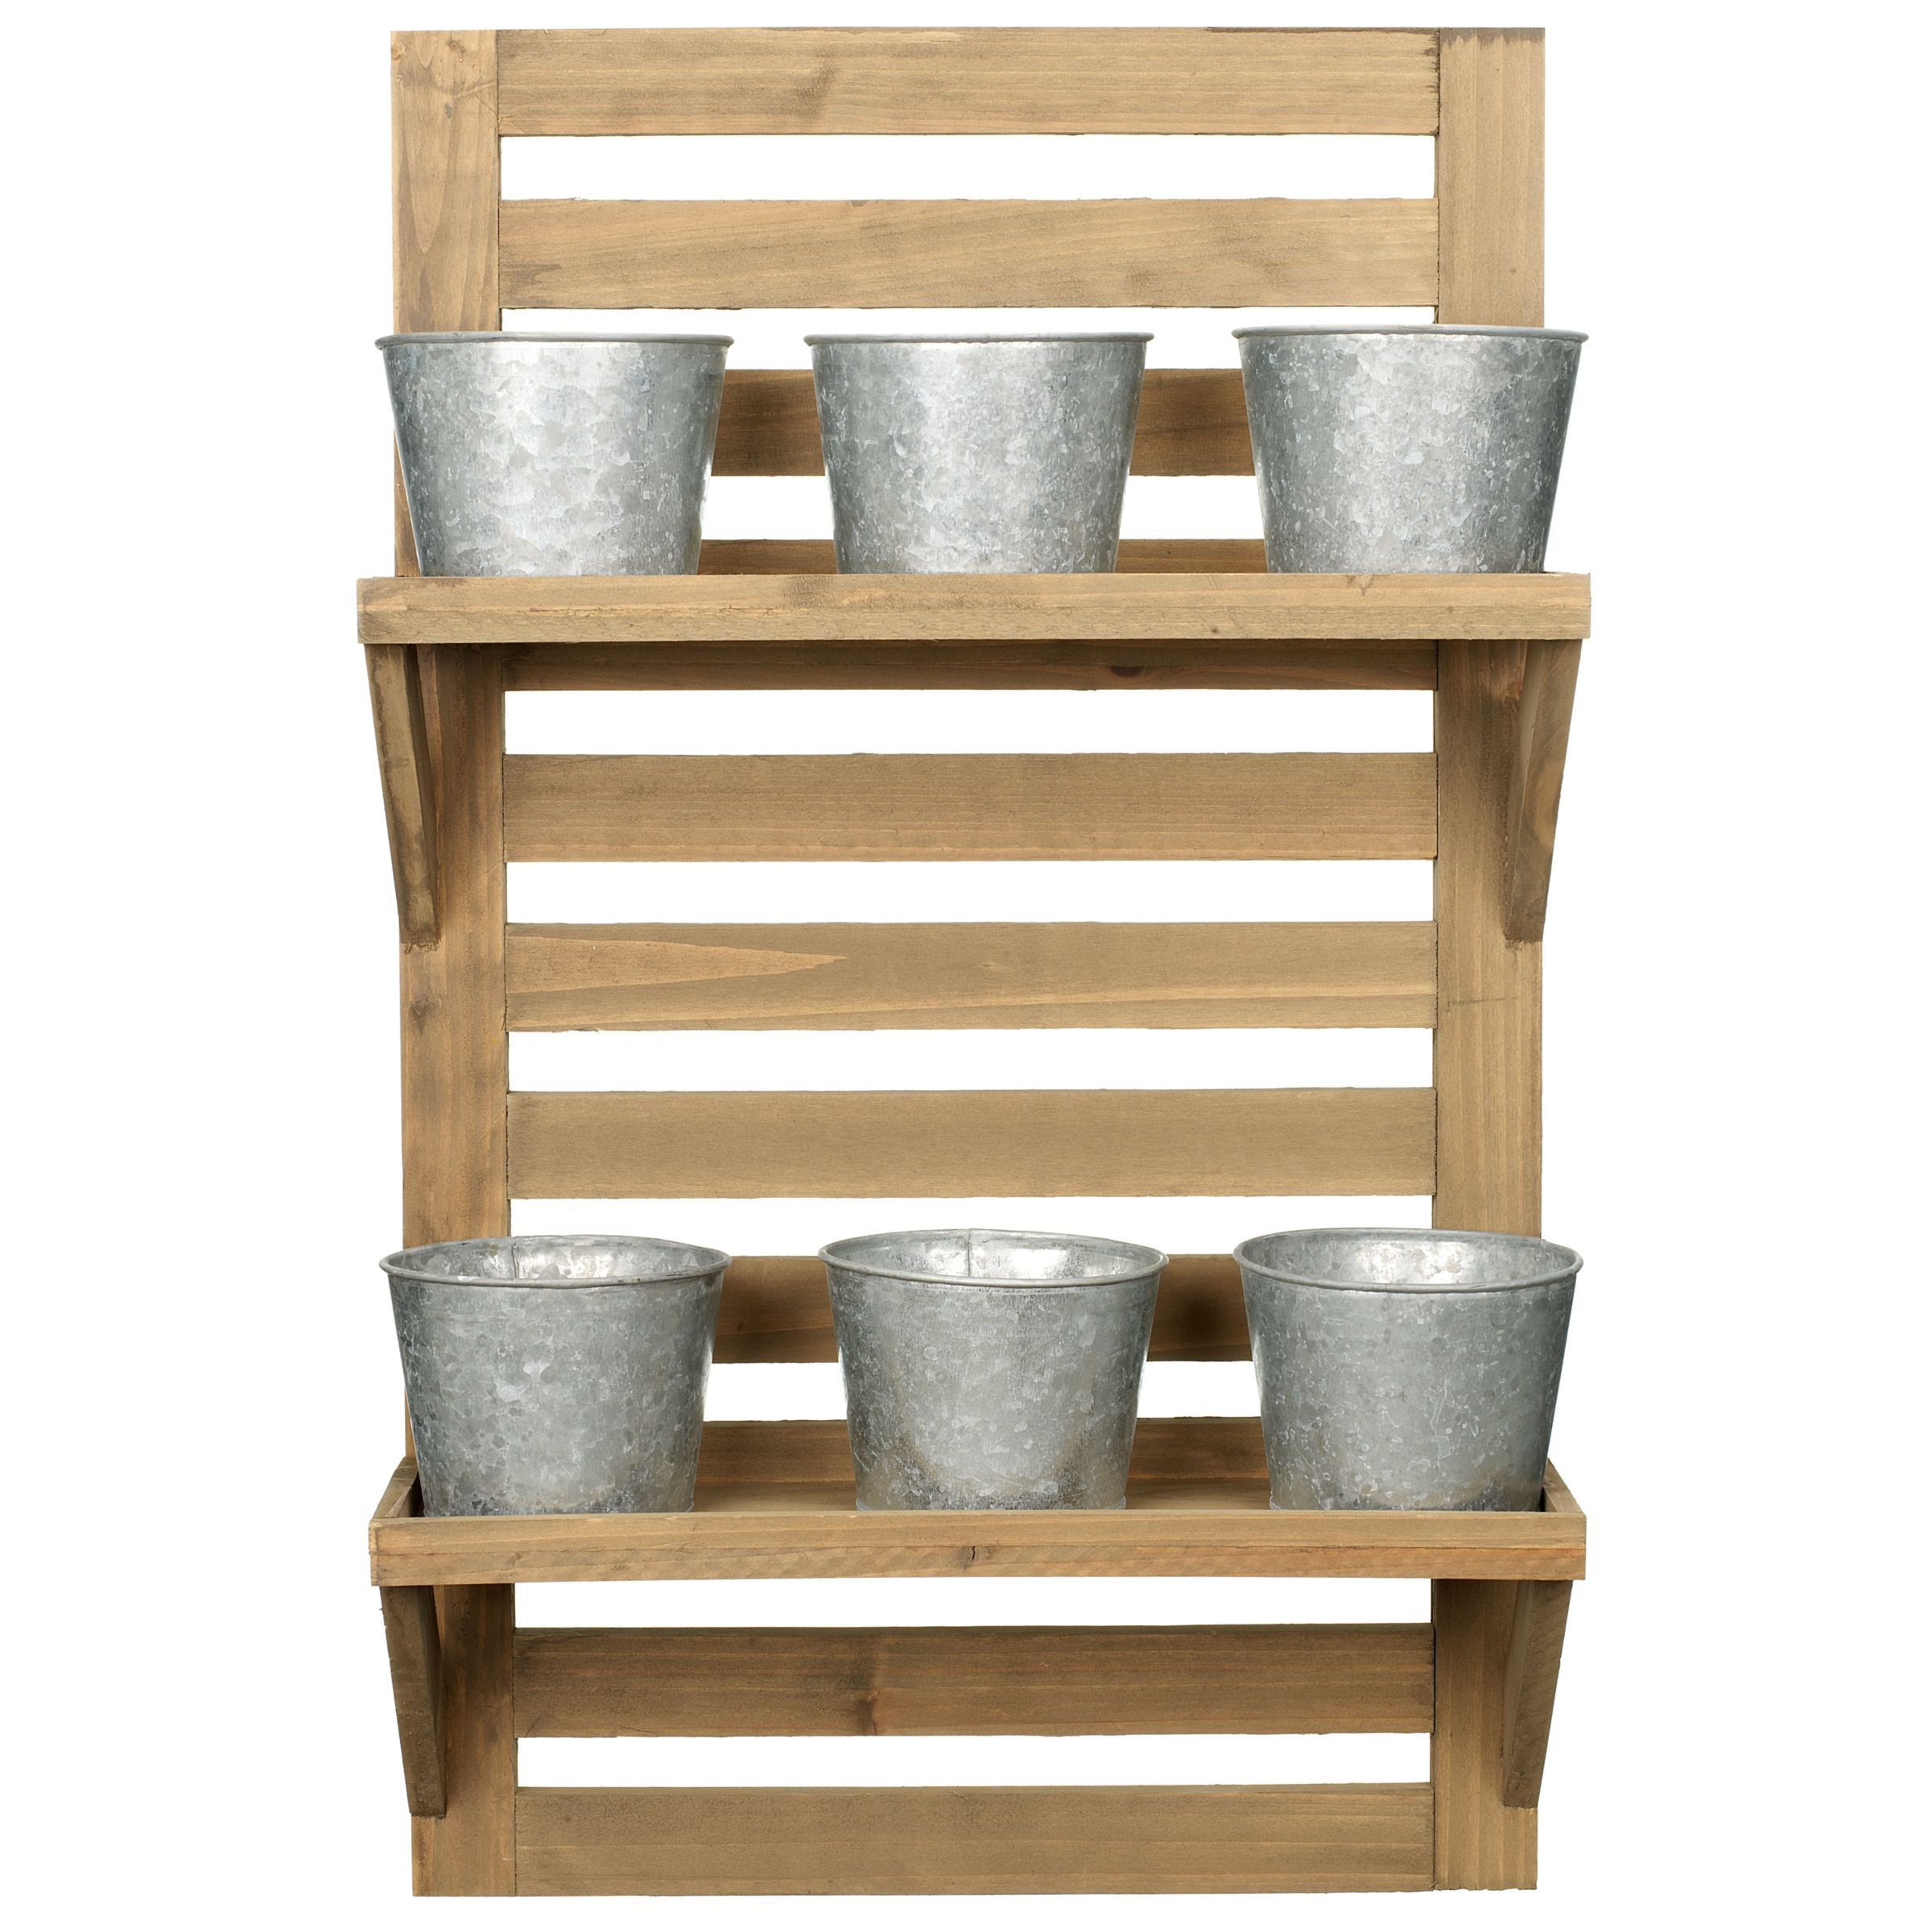 Garden Trading Wall-Mounted Herb Rack